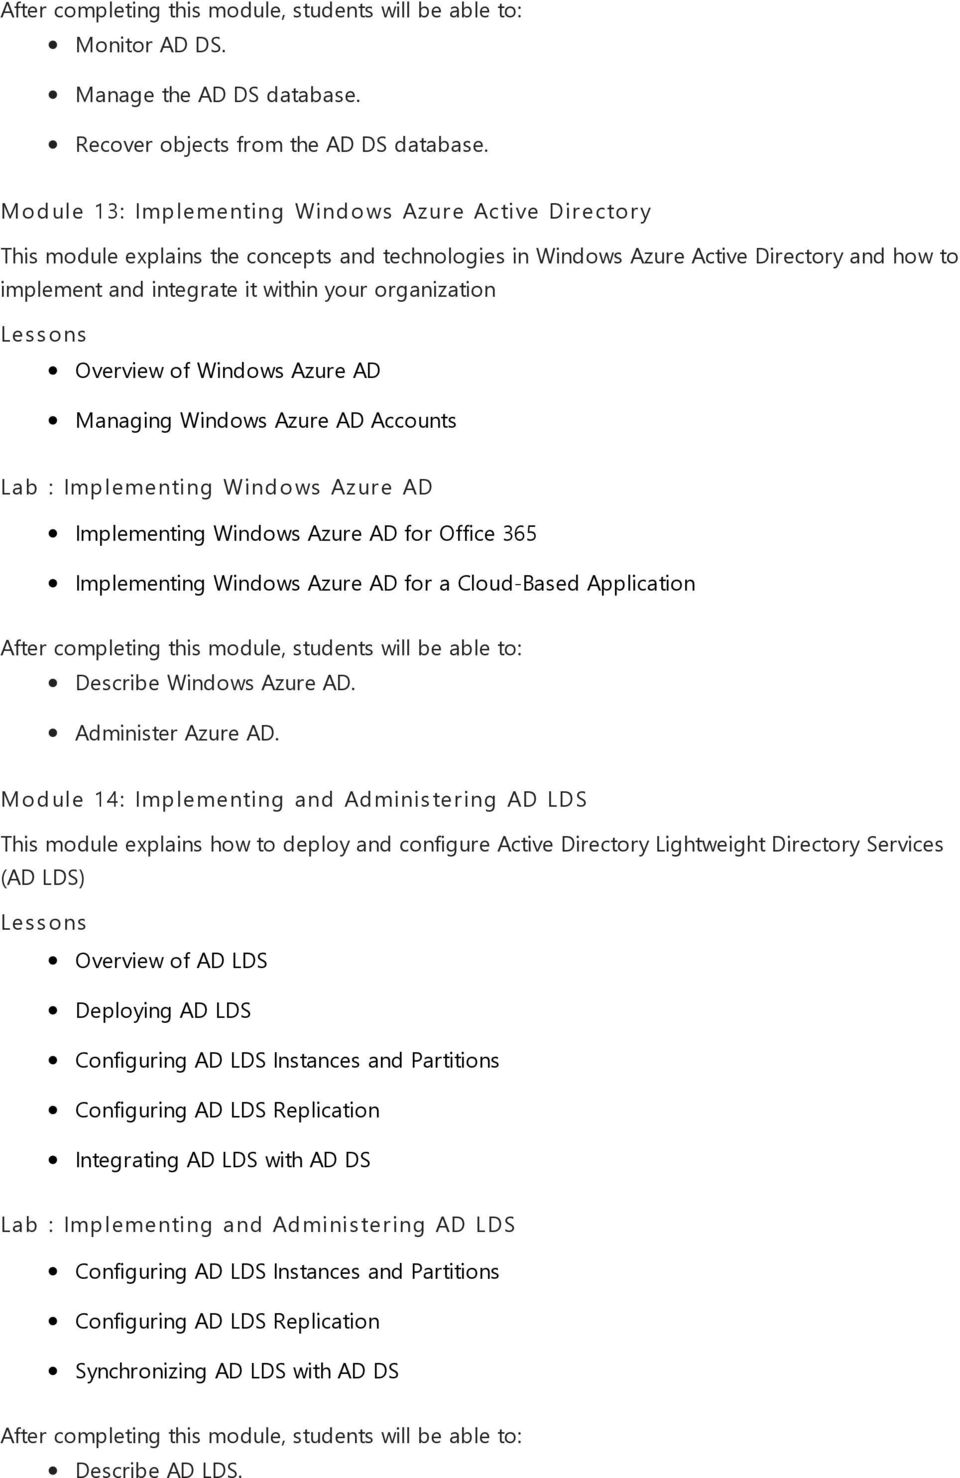 organization Overview of Windows Azure AD Managing Windows Azure AD Accounts Lab : Implementing Windows Azure AD Implementing Windows Azure AD for Office 365 Implementing Windows Azure AD for a